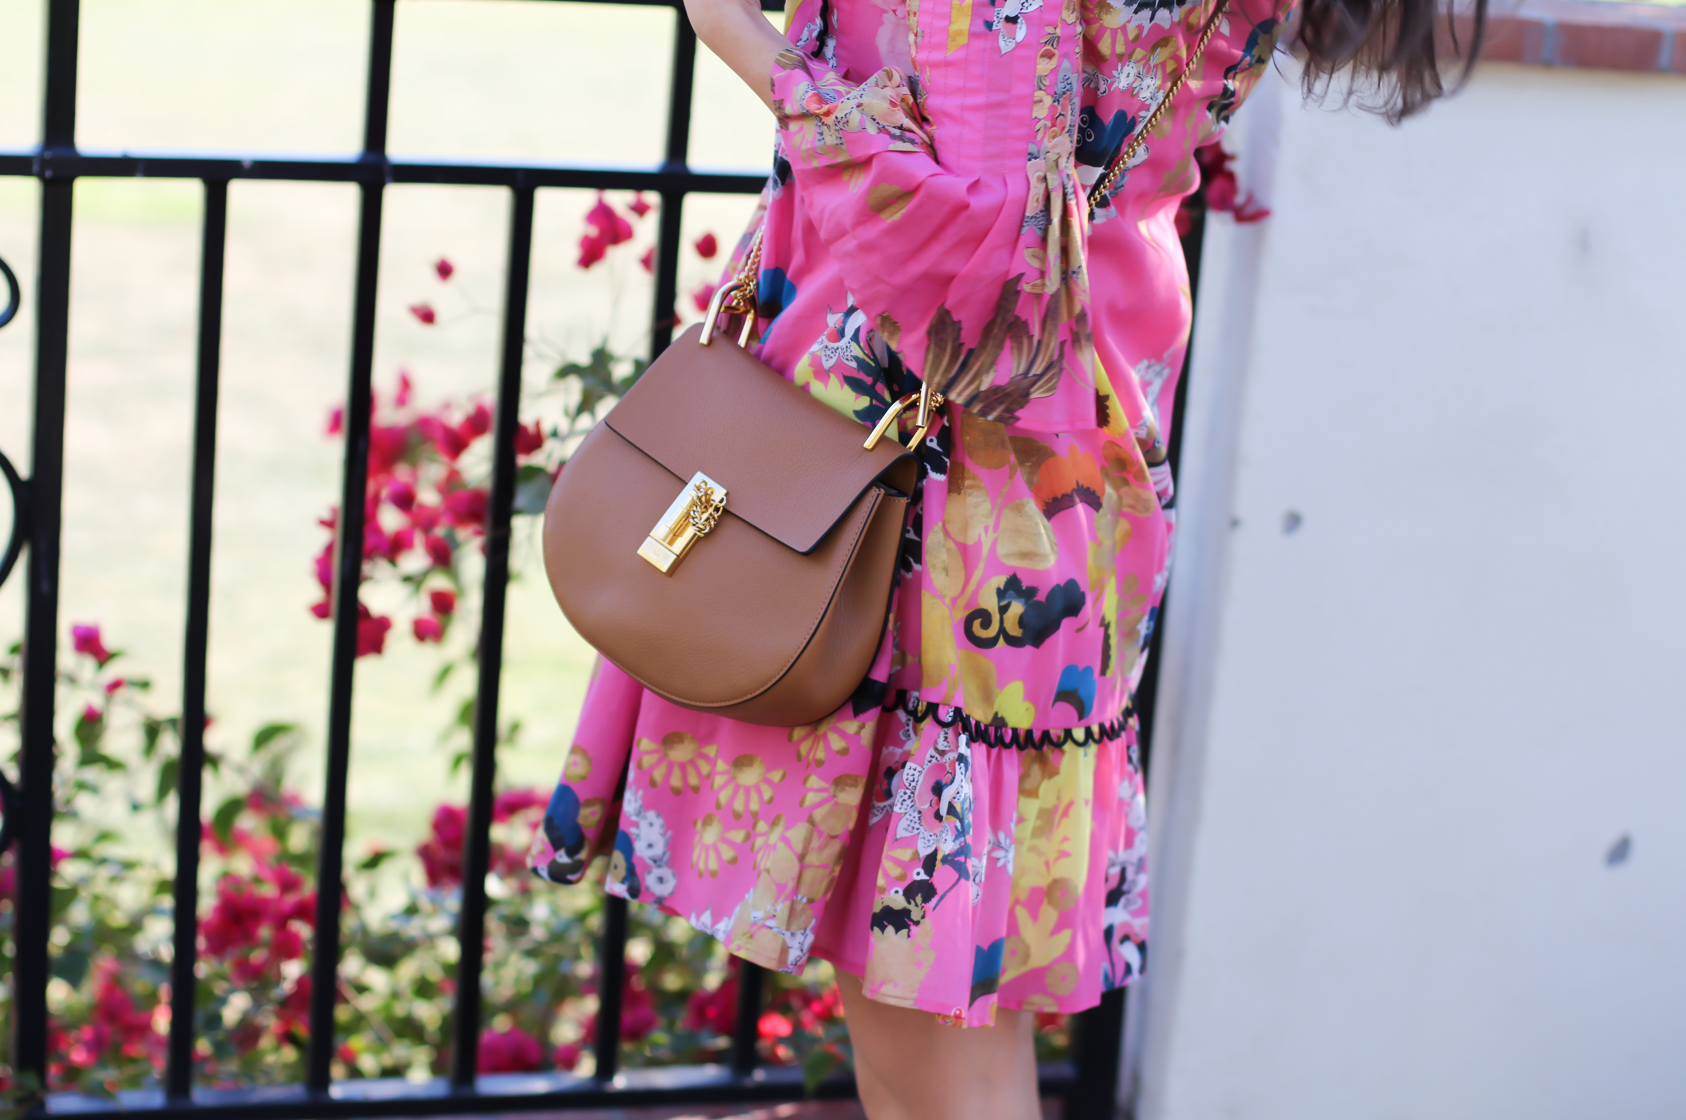 Pink Pintuck Floral Print Dress, Gladiator Sandals, Brown Leather Chain Strap Crossbody Bag, Cynthia Rolwey, Stuart Weitzman, Chloe